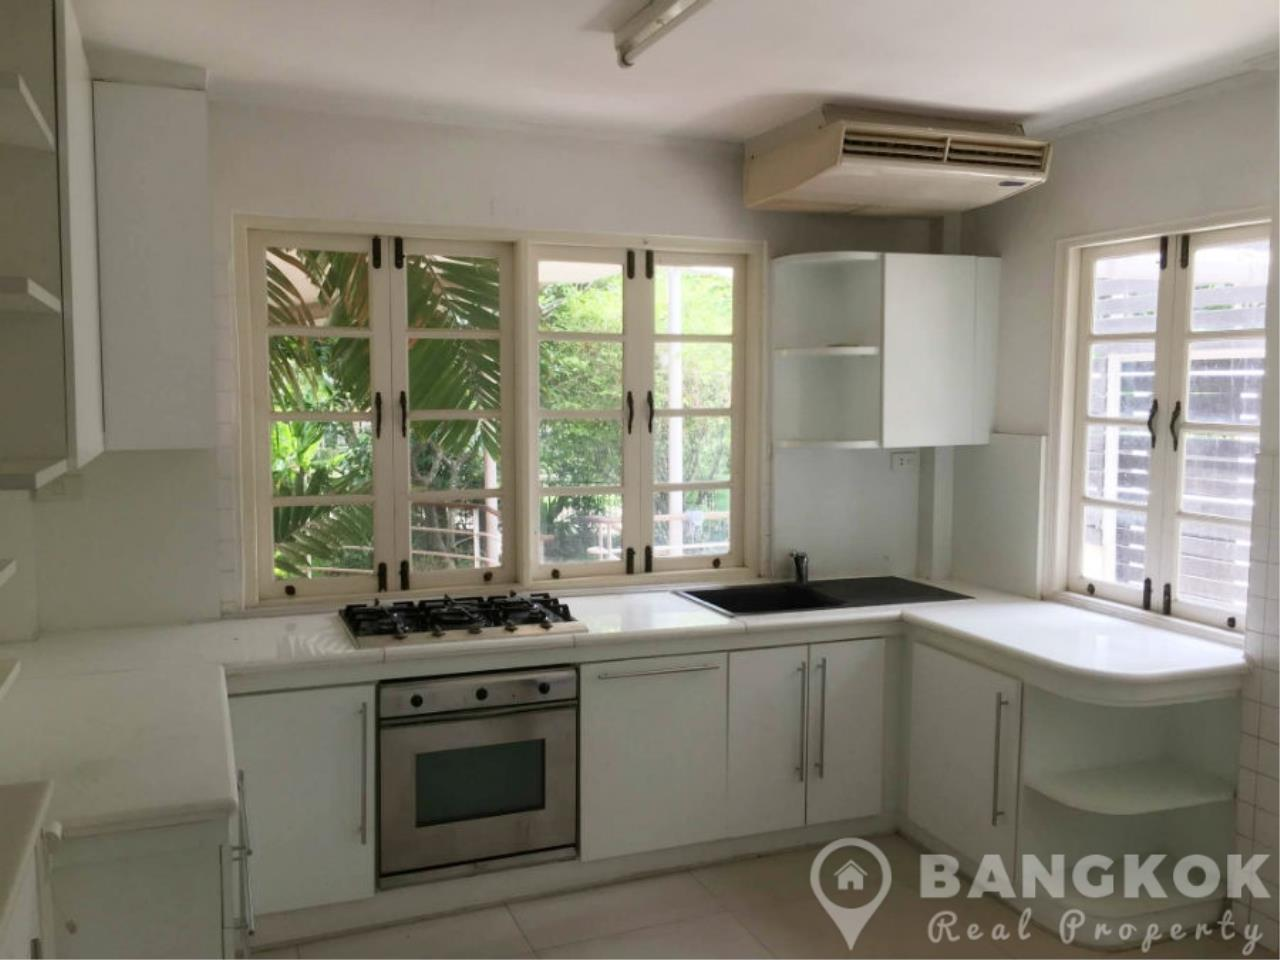 Bangkok Real Property Agency's Spacious, Detached 4 Bed 4 Bath House near Bangkok Patana School  3